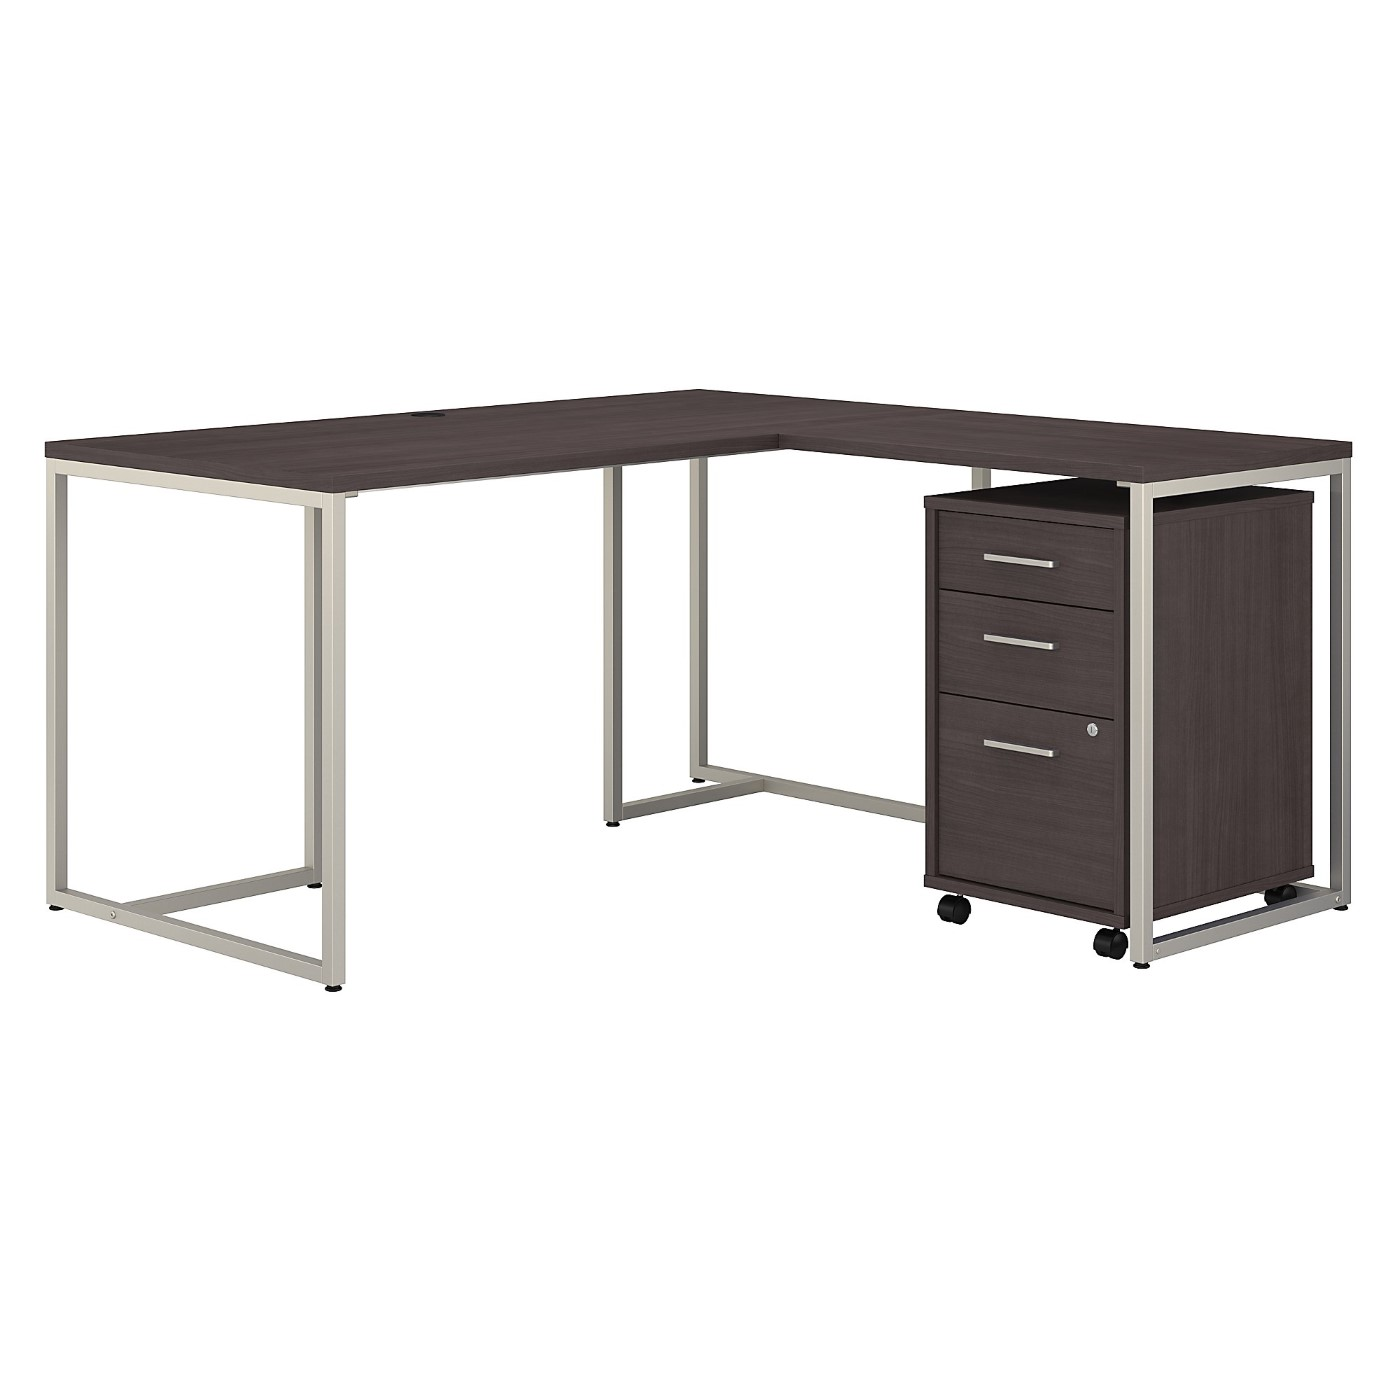 OFFICE BY KATHY IRELAND® METHOD 60W L SHAPED DESK WITH 30W RETURN AND MOBILE FILE CABINET. FREE SHIPPING